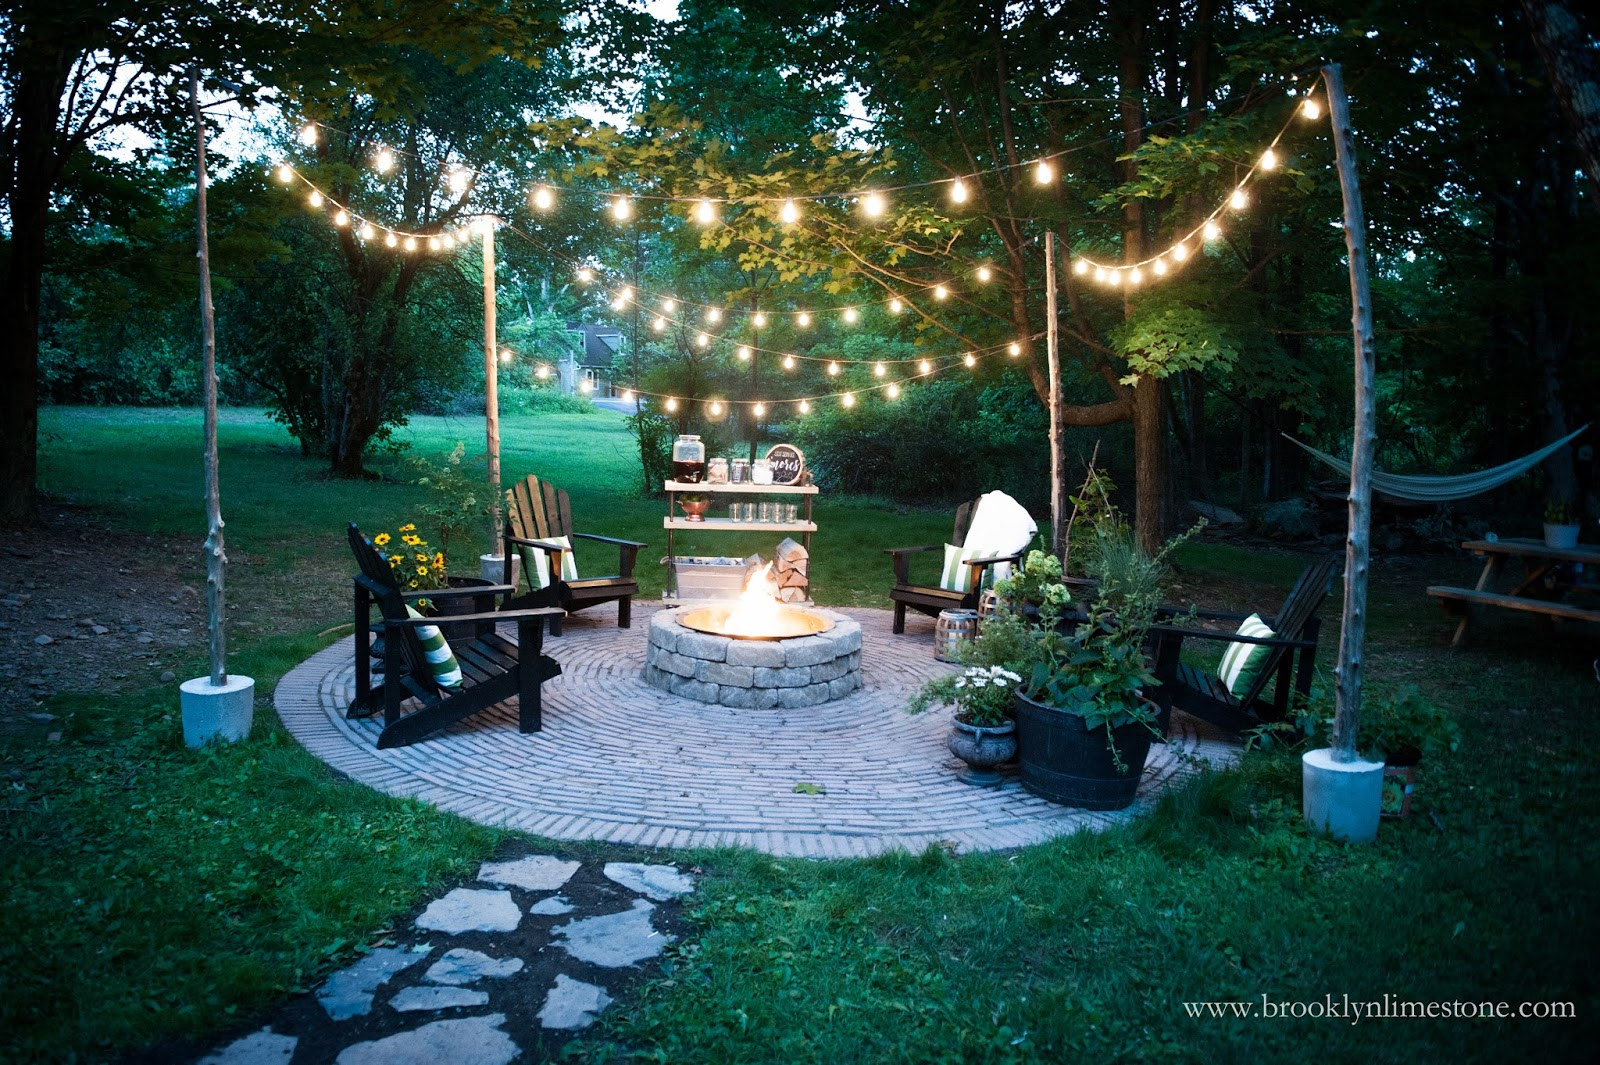 Completed Firepit Patio With Adirondack Chairs Lights And Plants